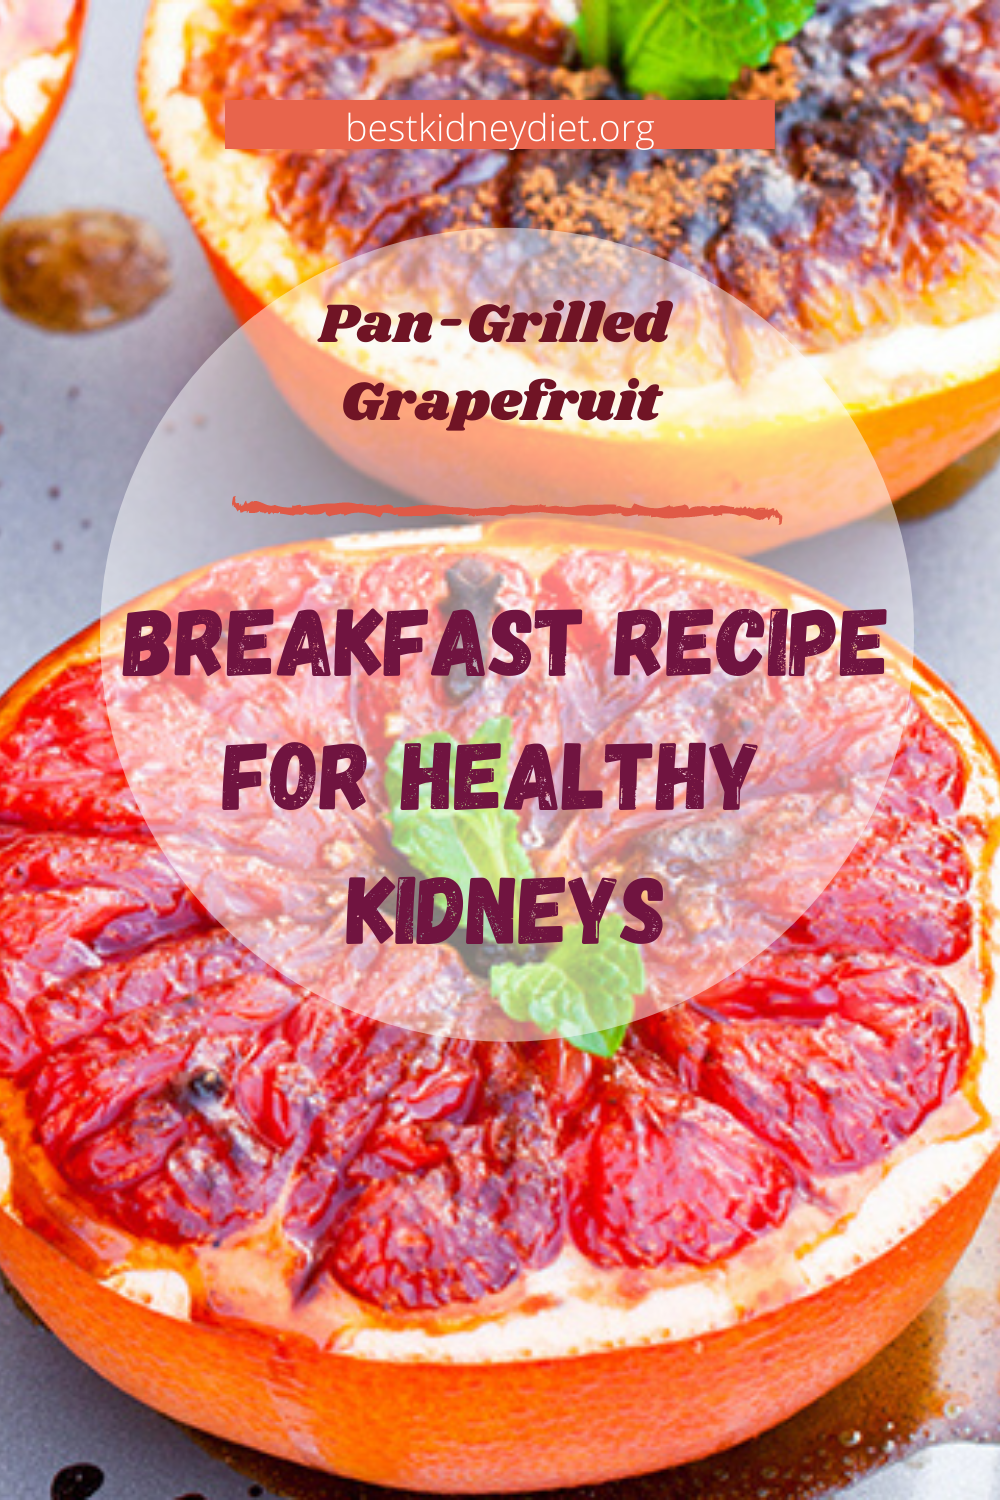 Pan-Grilled Grapefruit and Boiled Eggs